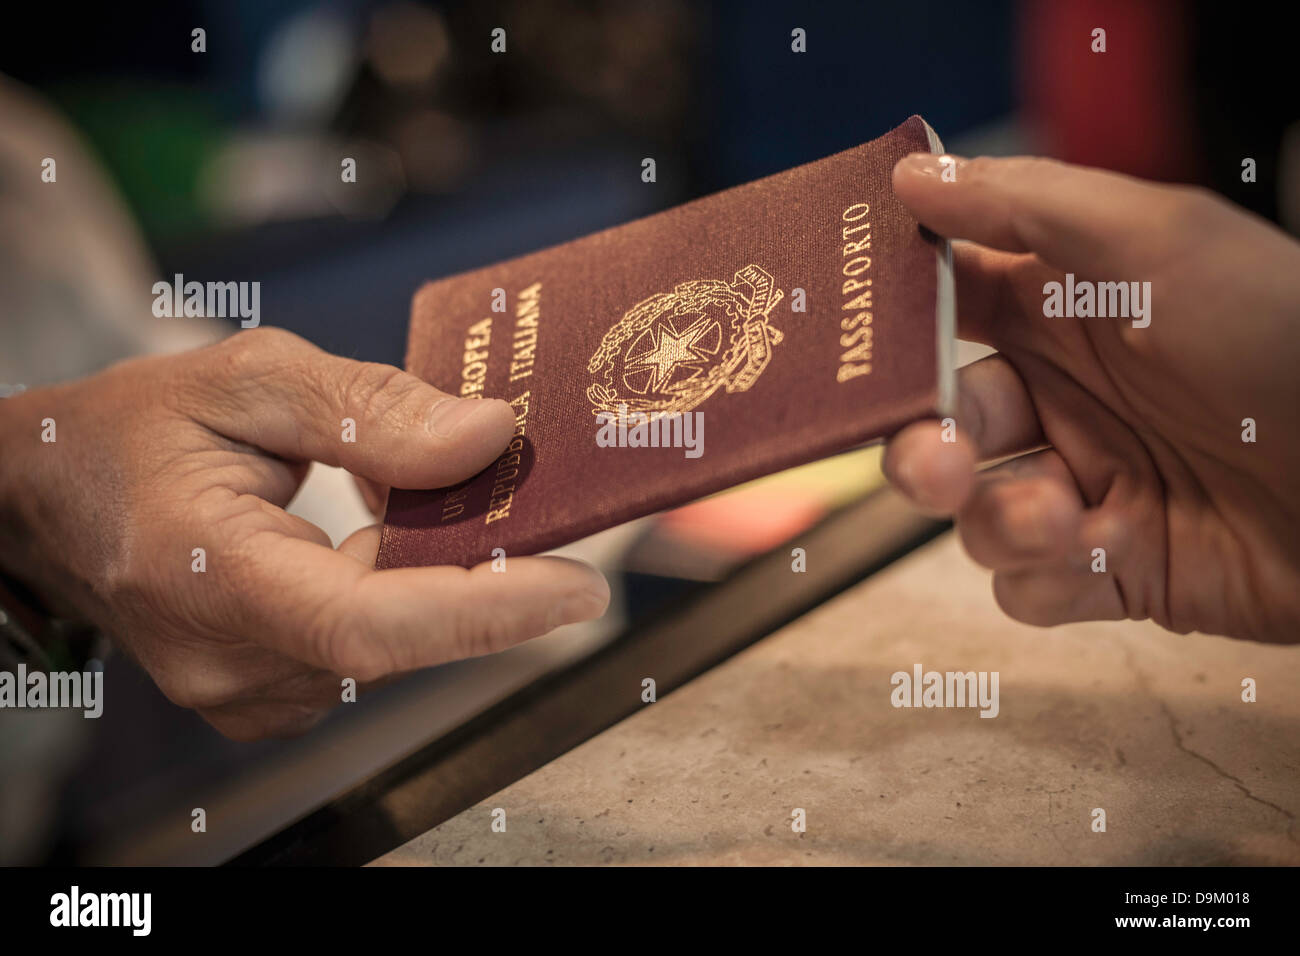 Person handing over passport, close up - Stock Image